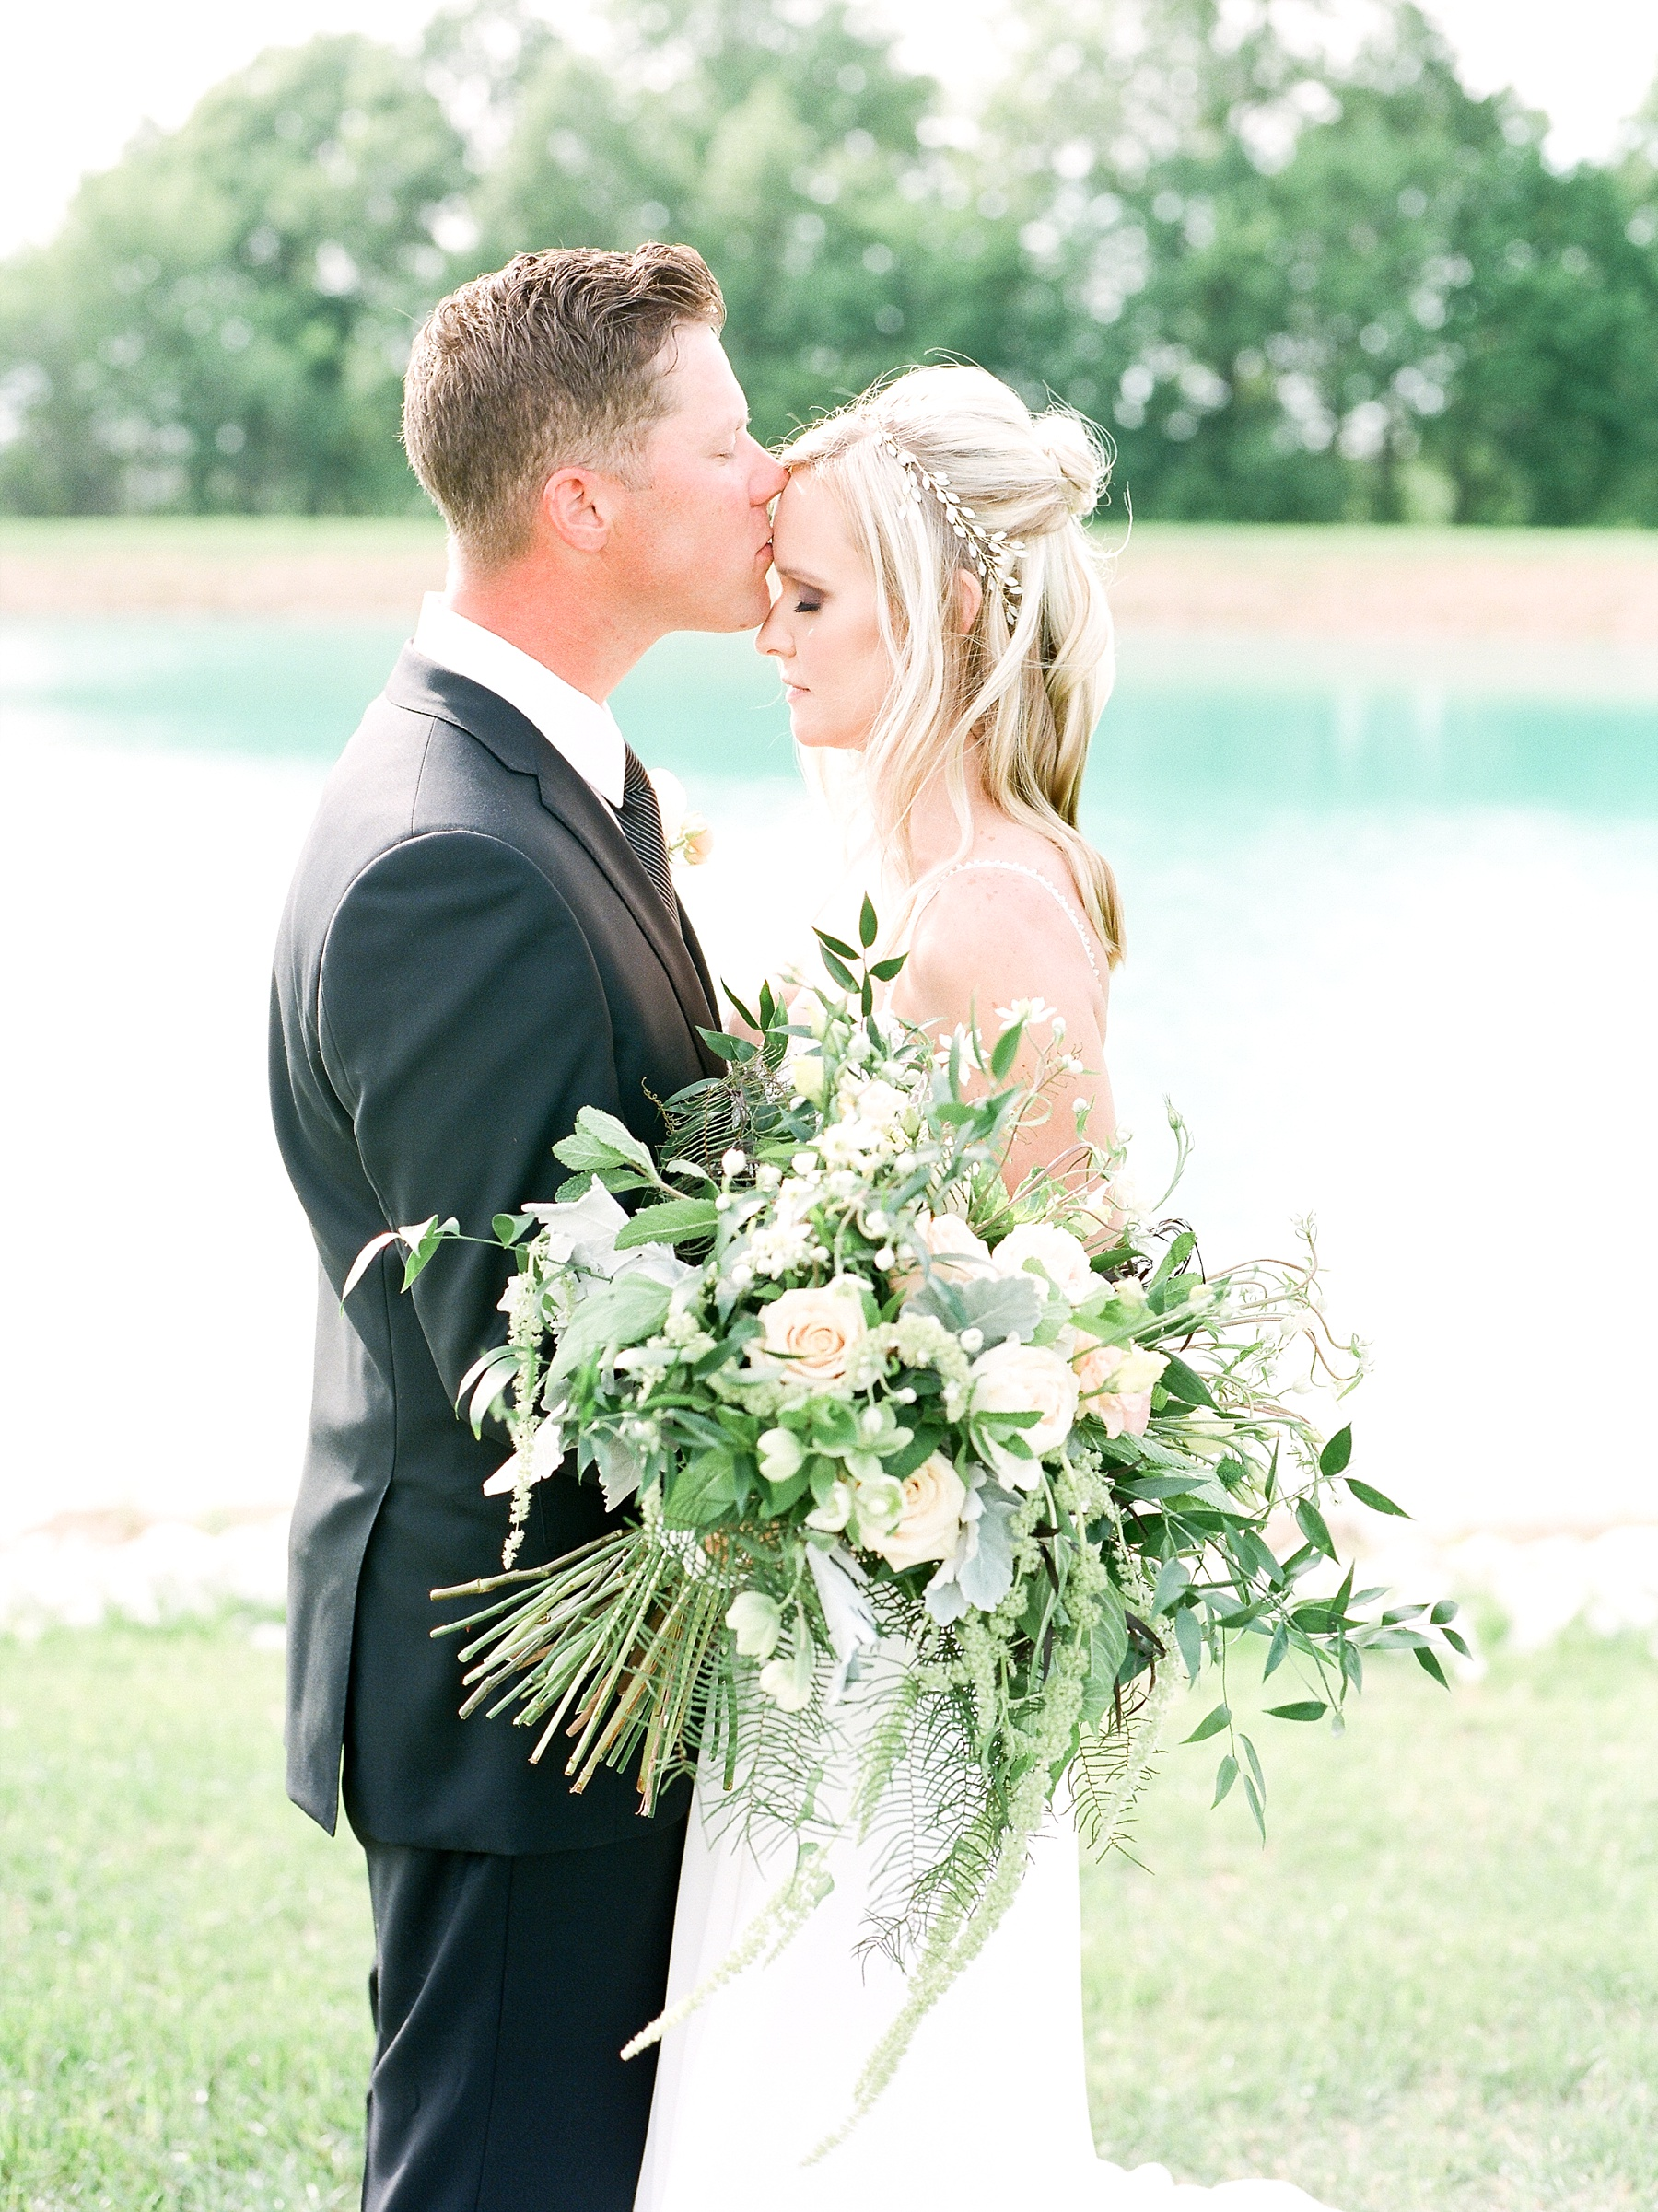 Textural Organic Wedding in All White Venue by Kelsi Kliethermes Wedding Photographer - Missouri, Midwest, and Destinations_0081.jpg